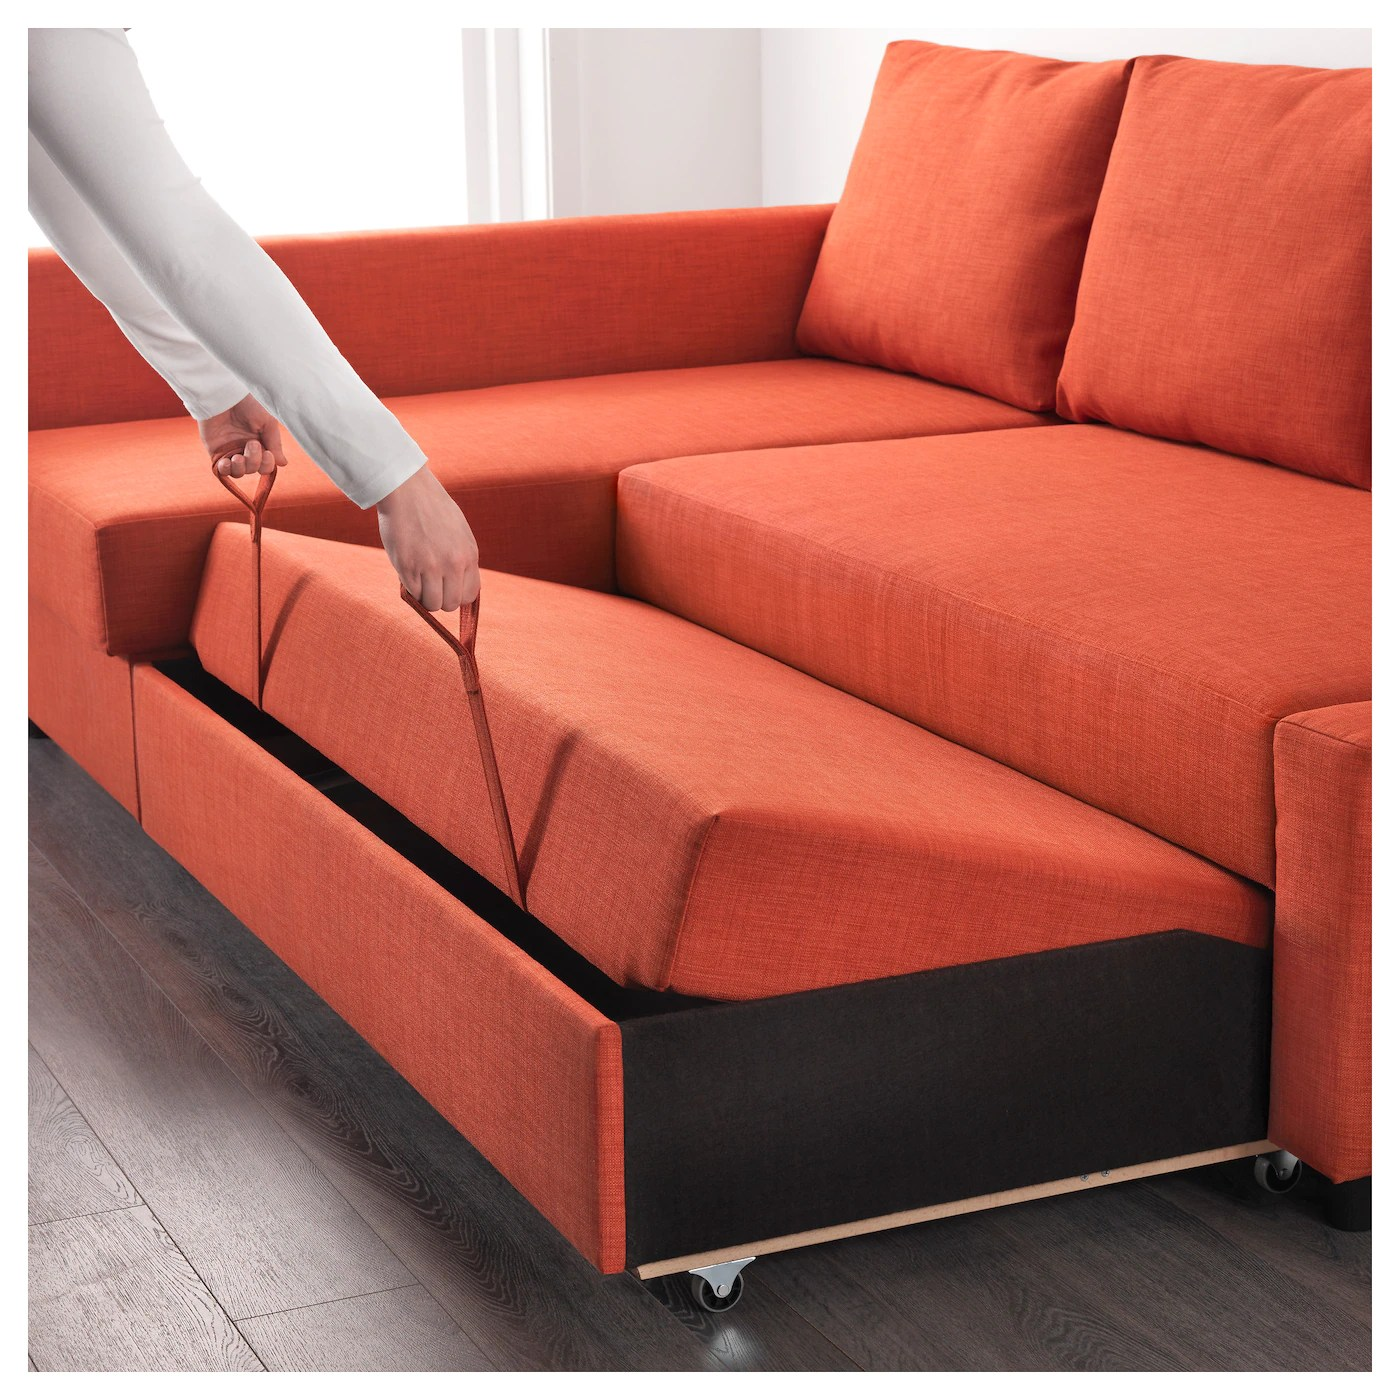 orange and black sofa bed brown beds friheten corner with storage skiftebo dark